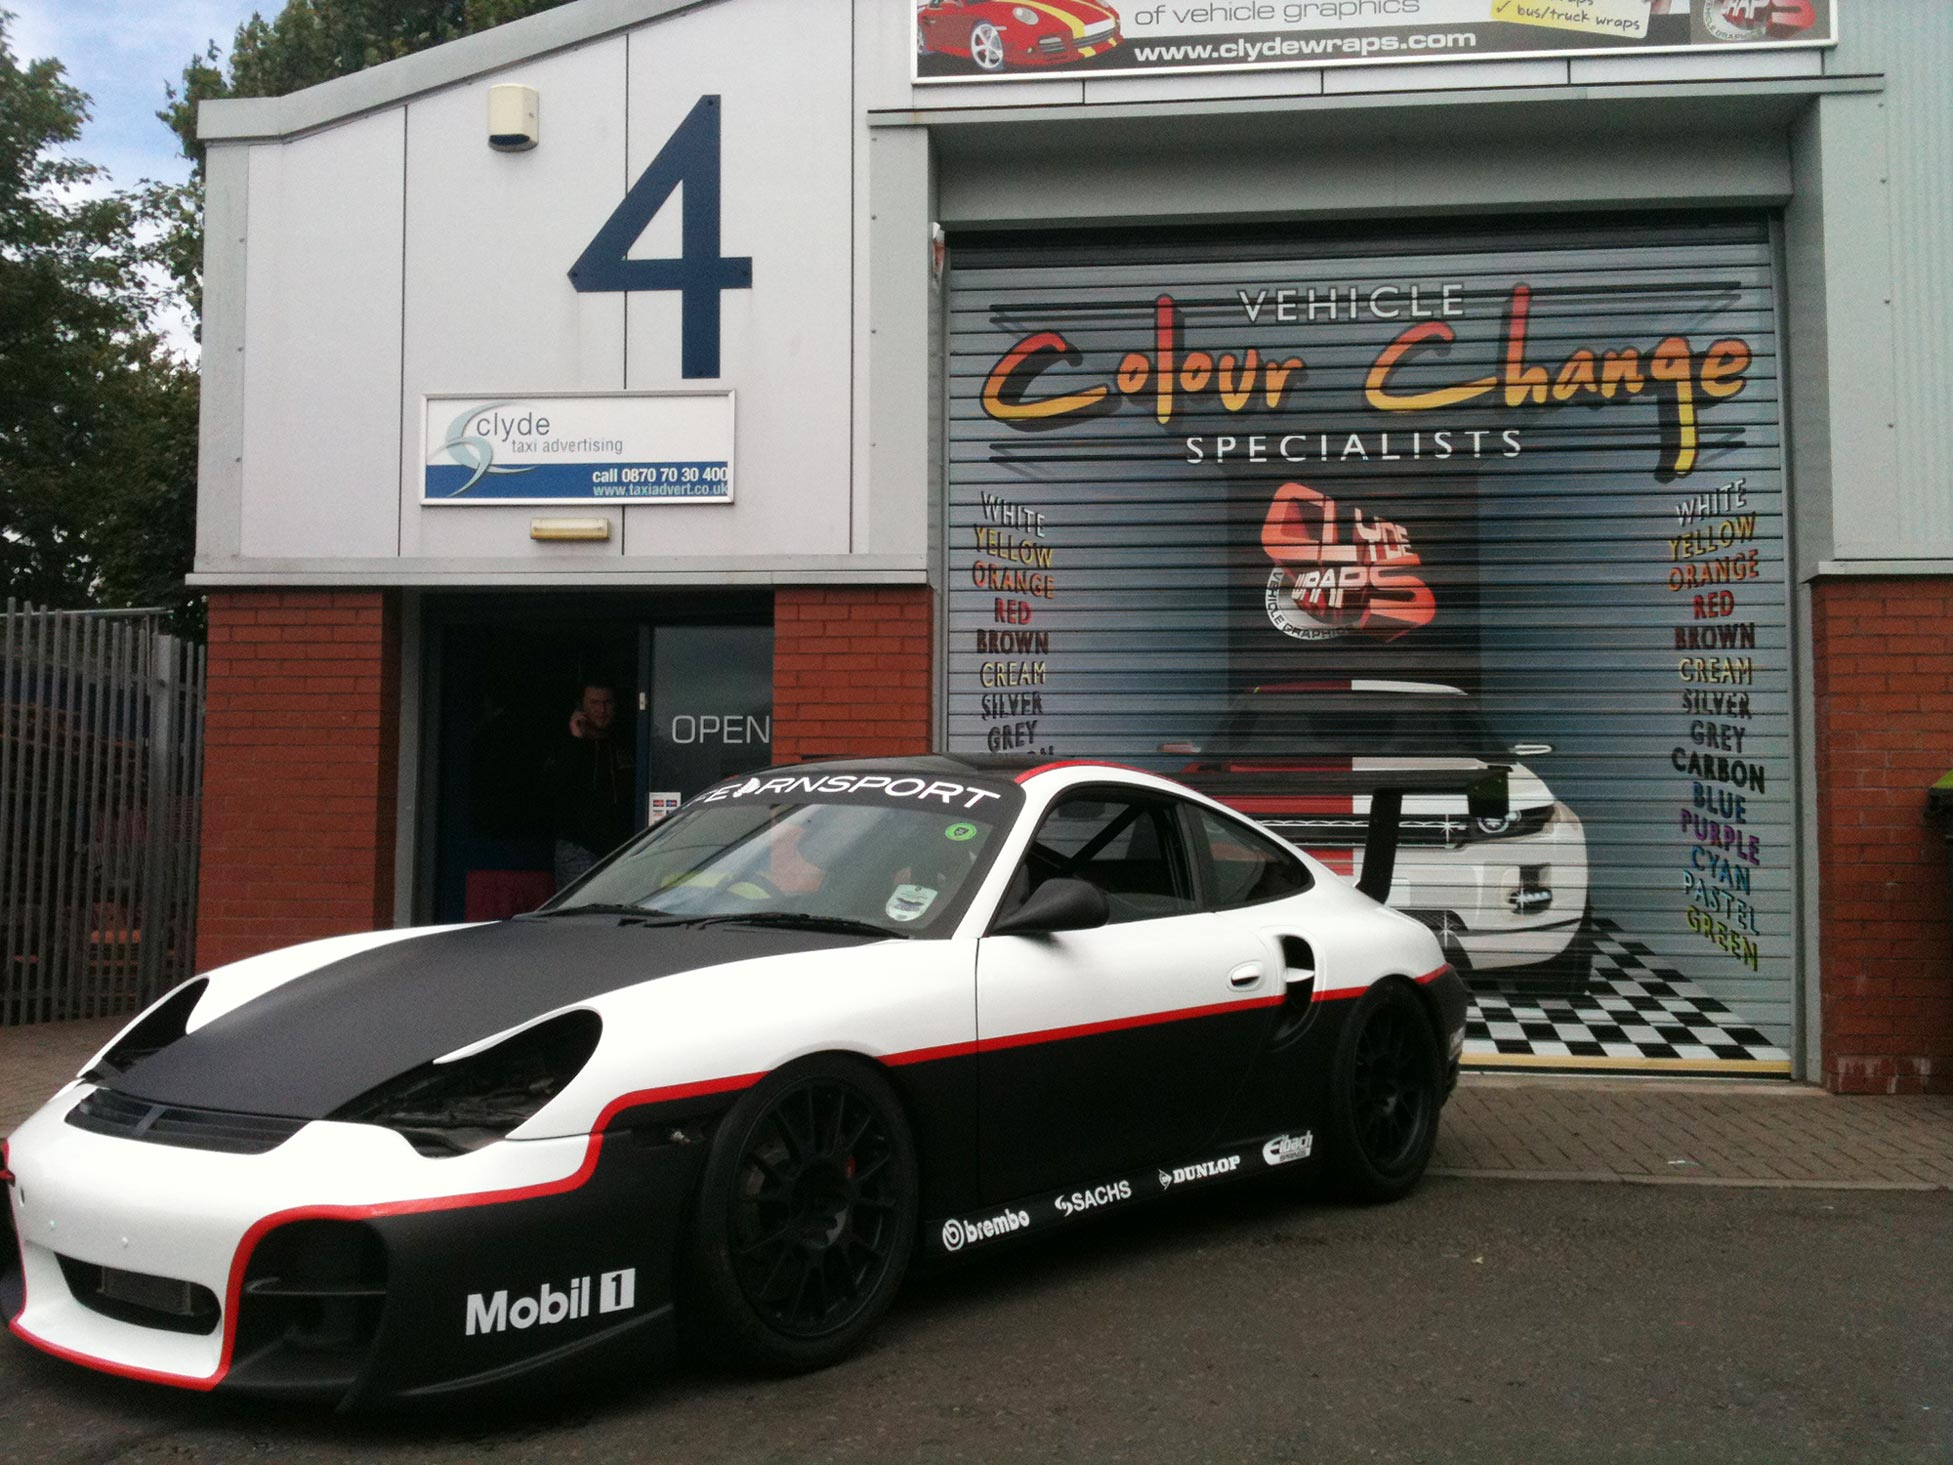 Base Porsche 911 Racing Car With Sponsors Logos To Add